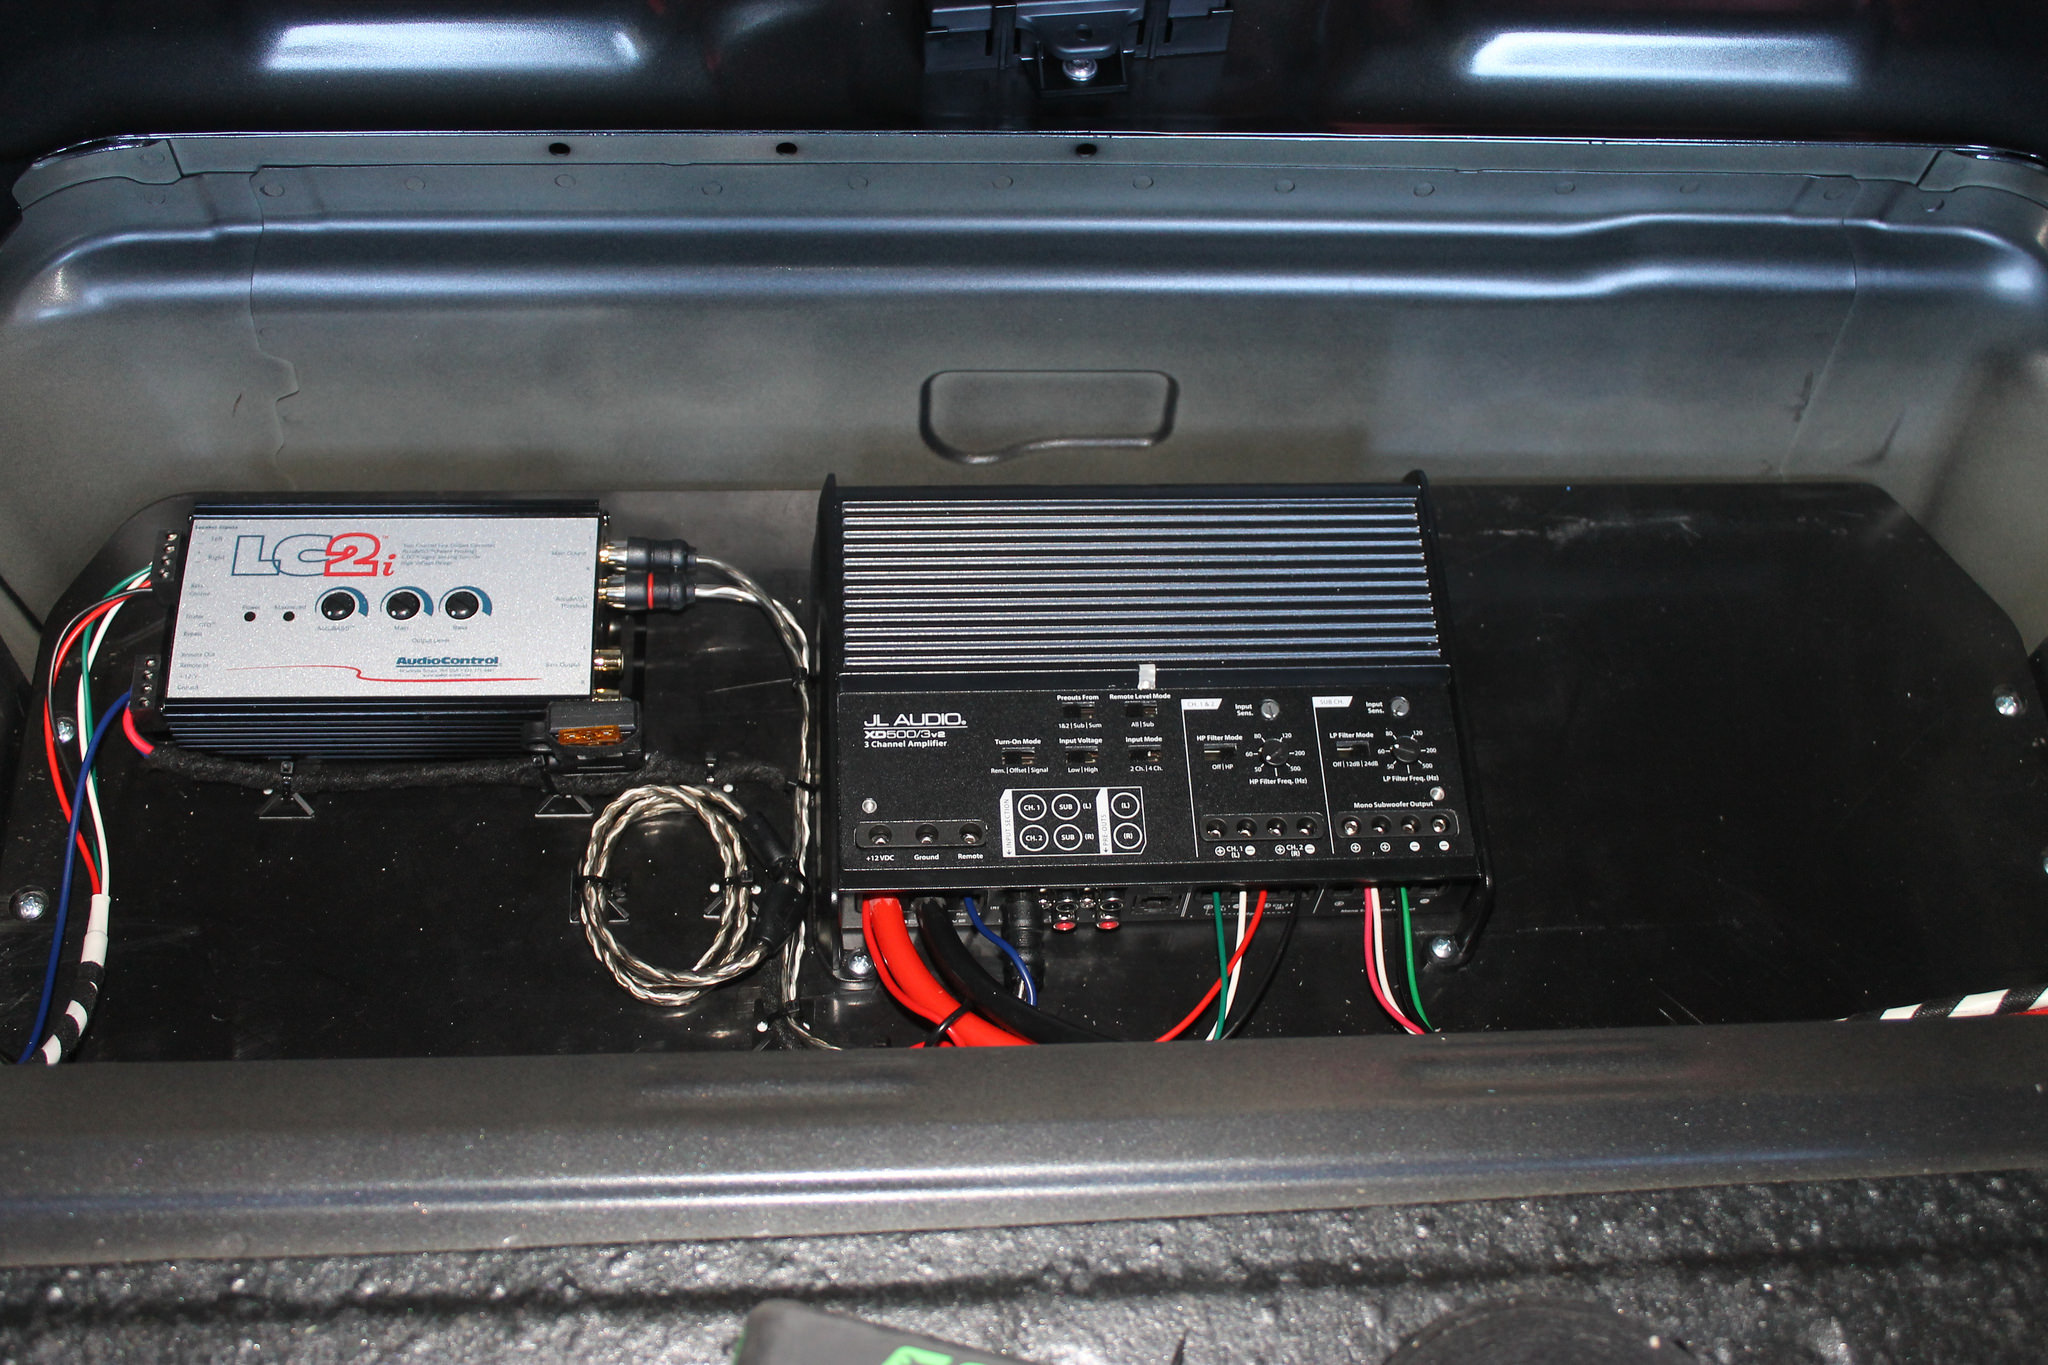 Mazda Cx In Dash Car Dvd Player as well Cart in addition Custom Panel For Rigid Light Switches besides Toyota Yaris In Dash Audio also F X Fb L Rack. on car audio systems installation